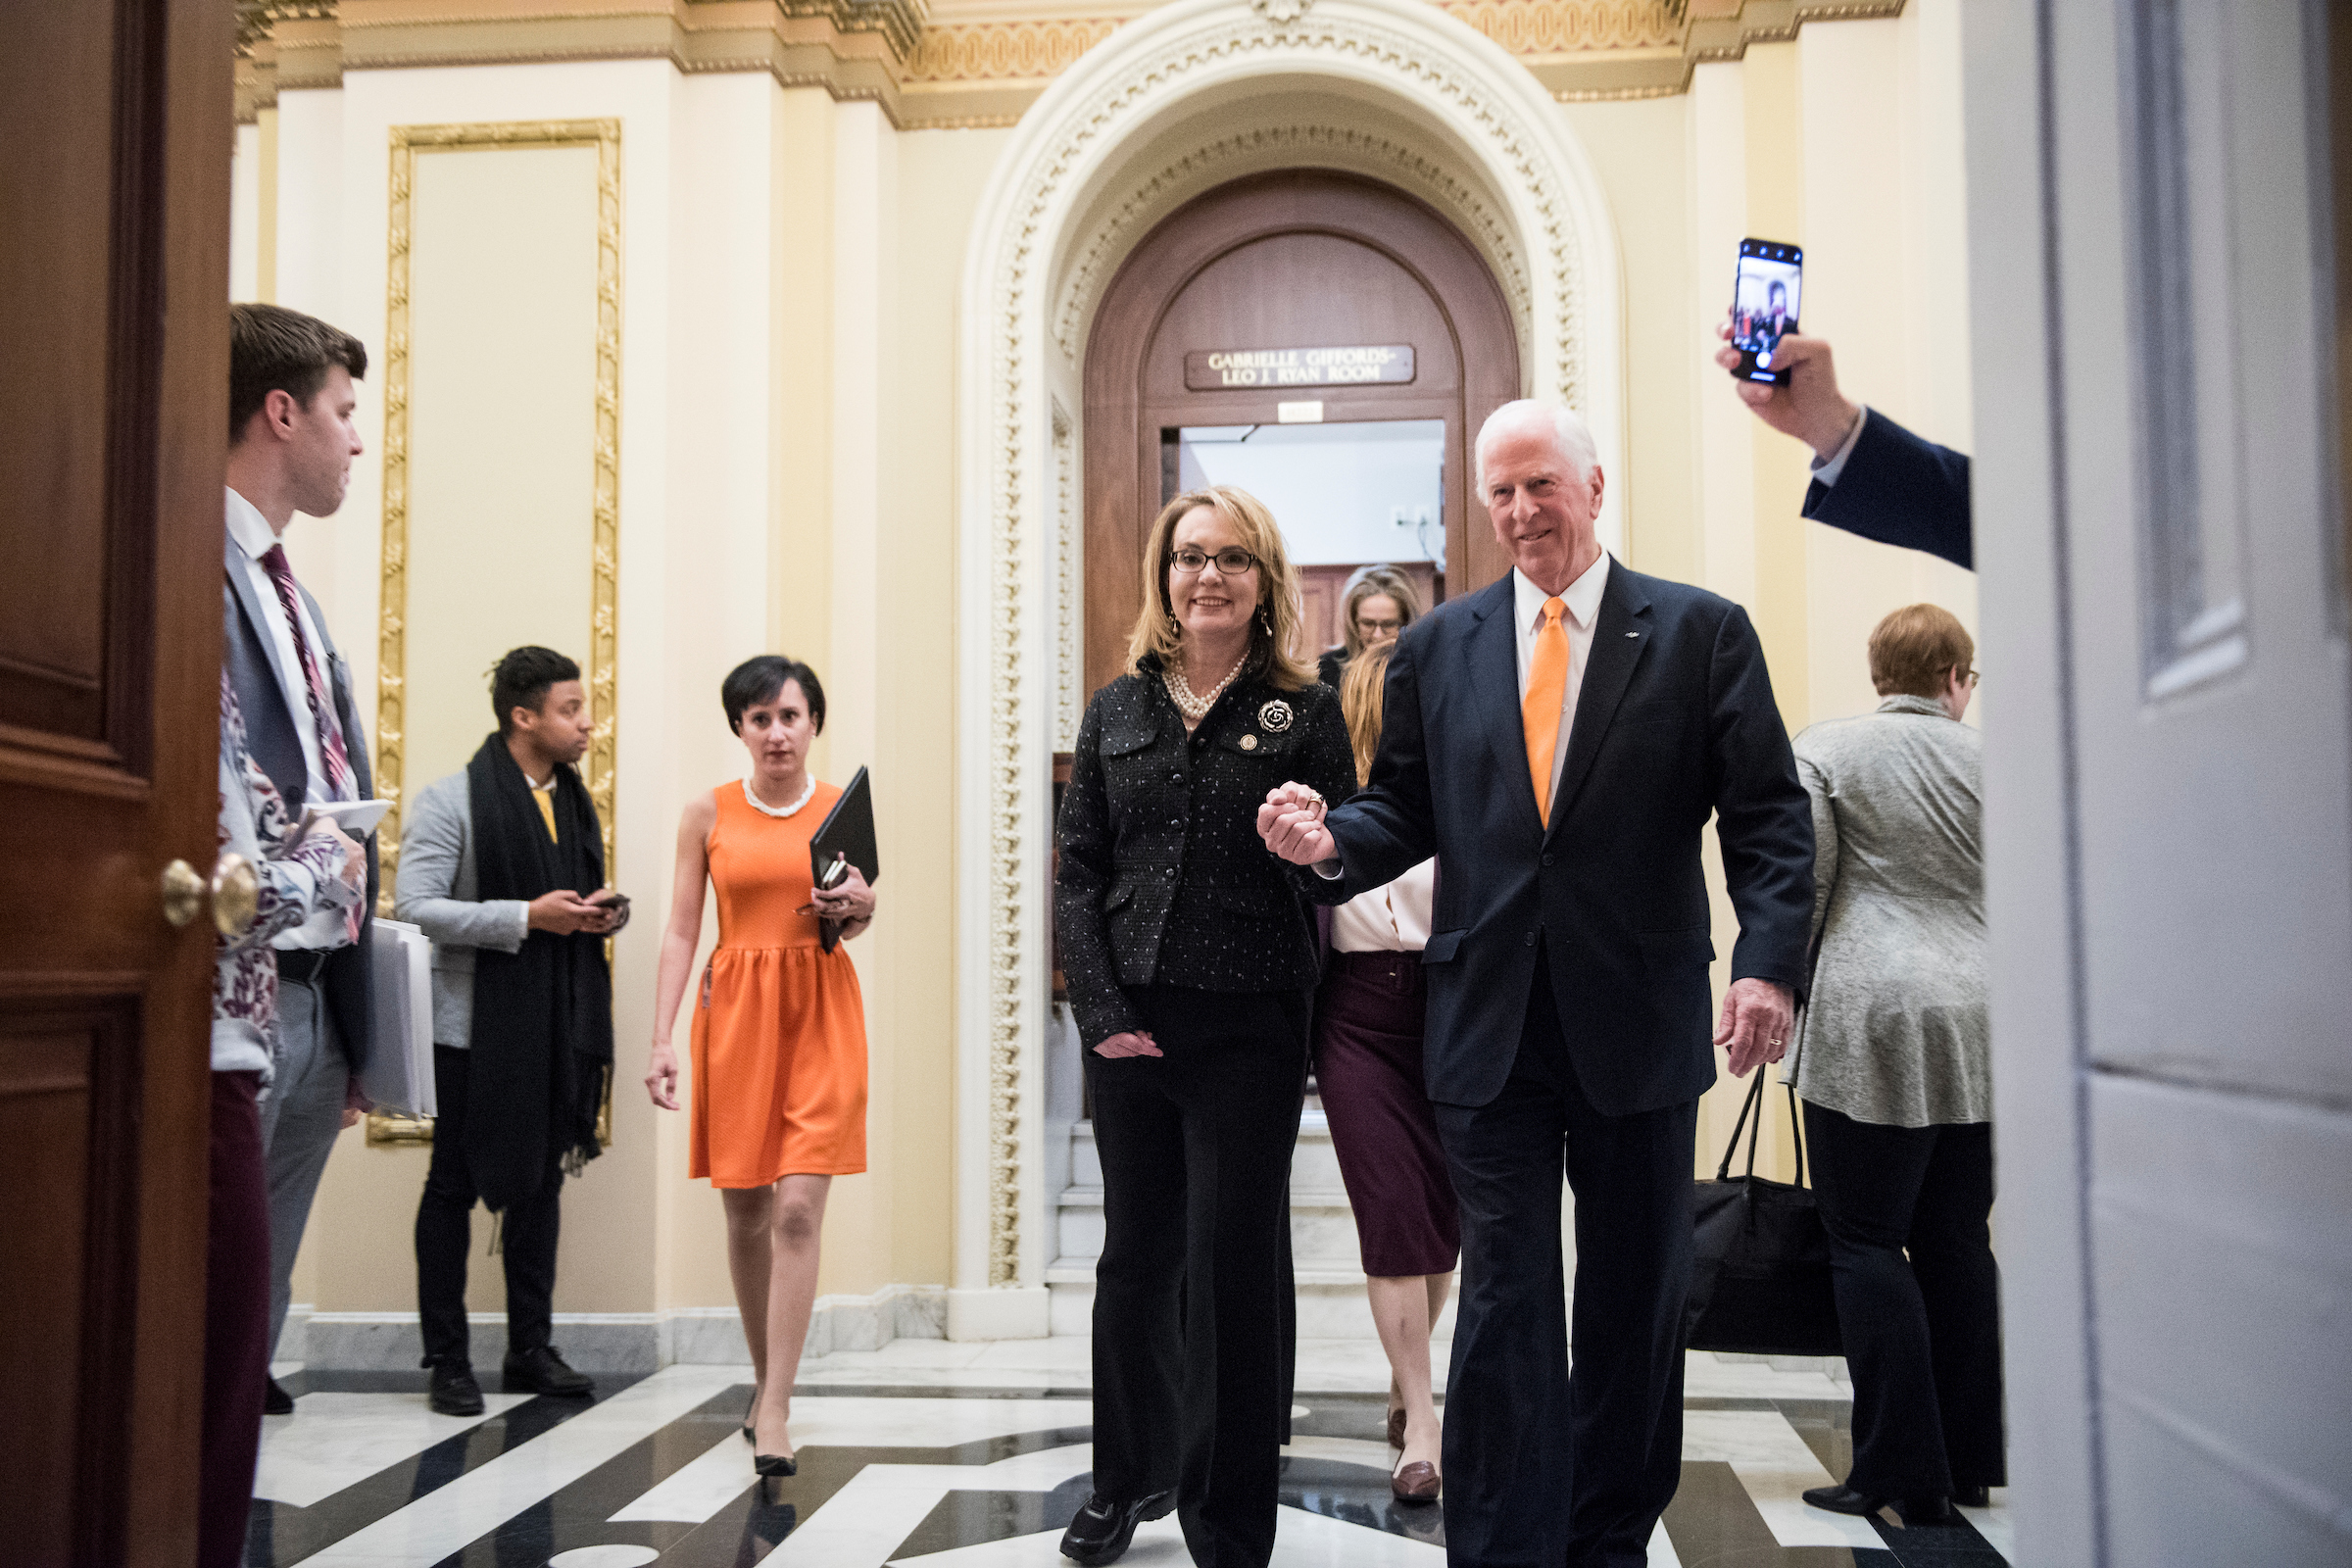 UNITED STATES - JANUARY 8: Former Rep. Gabby Giffords, D-Ariz., and Rep. Mike Thompson, D-Calif., leave the Gabrielle Giffords-Leo J. Ryan Room, after officially submitting the Bipartisan Background Checks Act of 2019 in the Capitol on Tuesday, Jan. 8, 2018. (Photo By Bill Clark/CQ Roll Call)